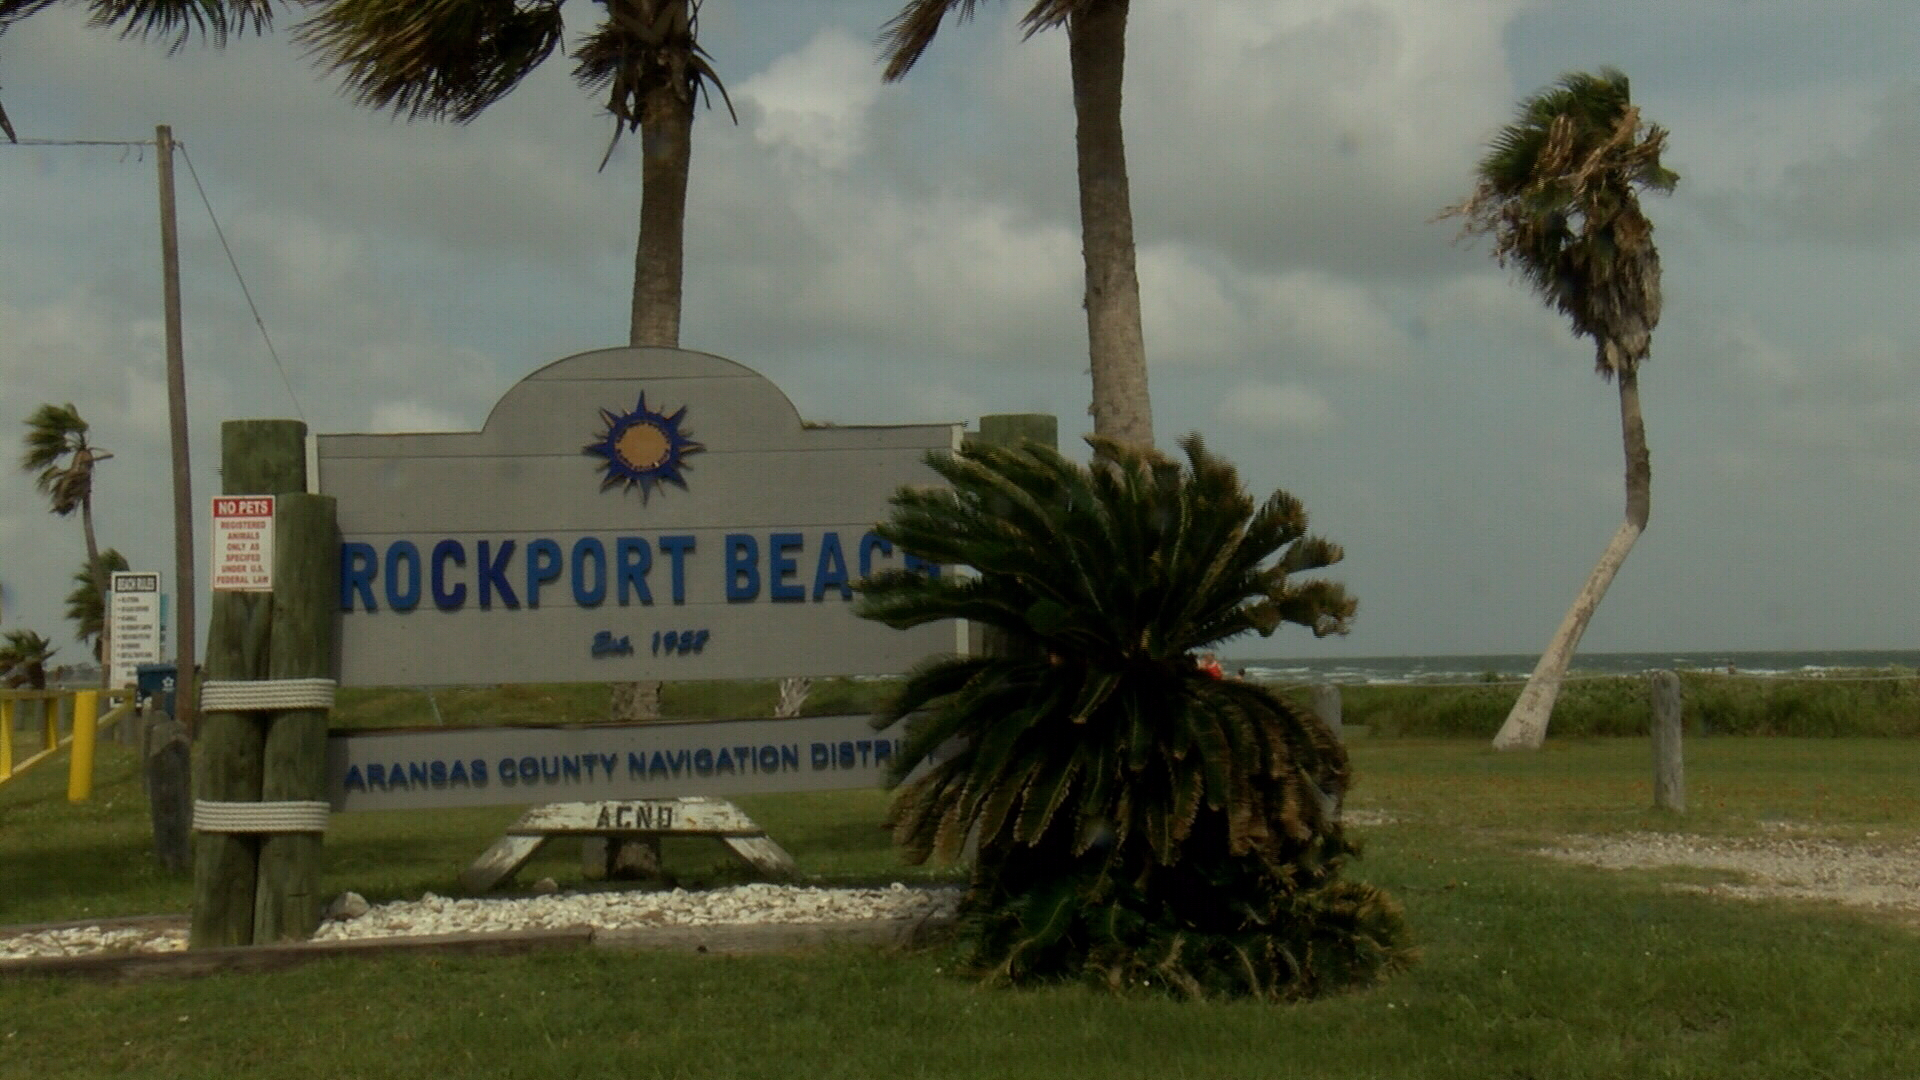 Rockport Beach receives recognition for cleanliness, bacteria monitoring